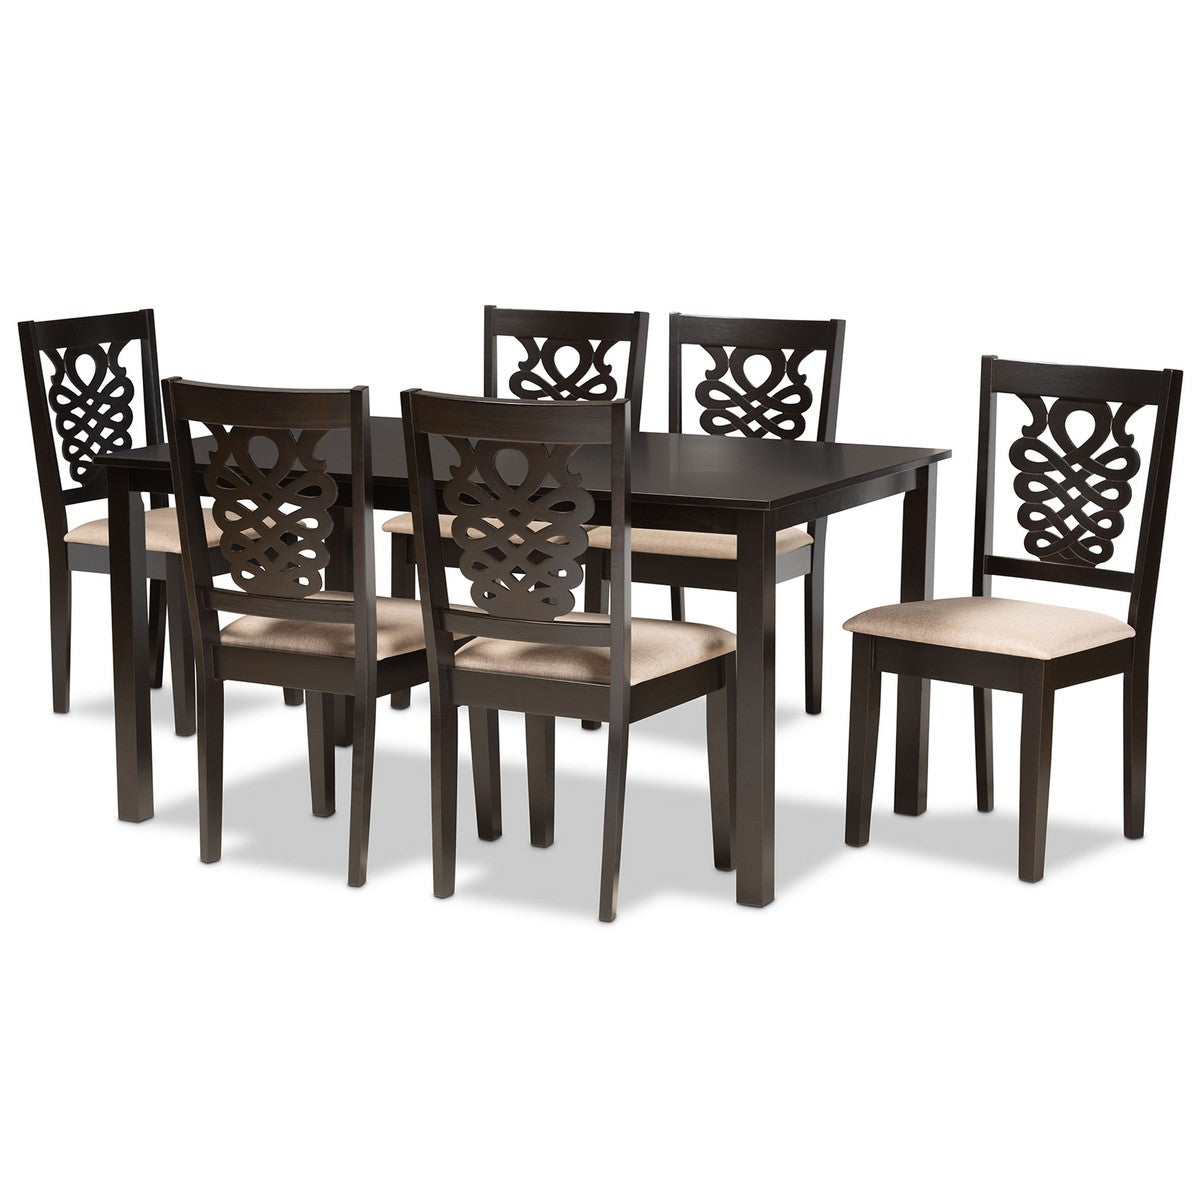 Baxton Studio Gervais Modern and Contemporary Sand Fabric Upholstered and Dark Brown Finished Wood 7-Piece Dining Set Baxton Studio-Dining Sets-Minimal And Modern - 1